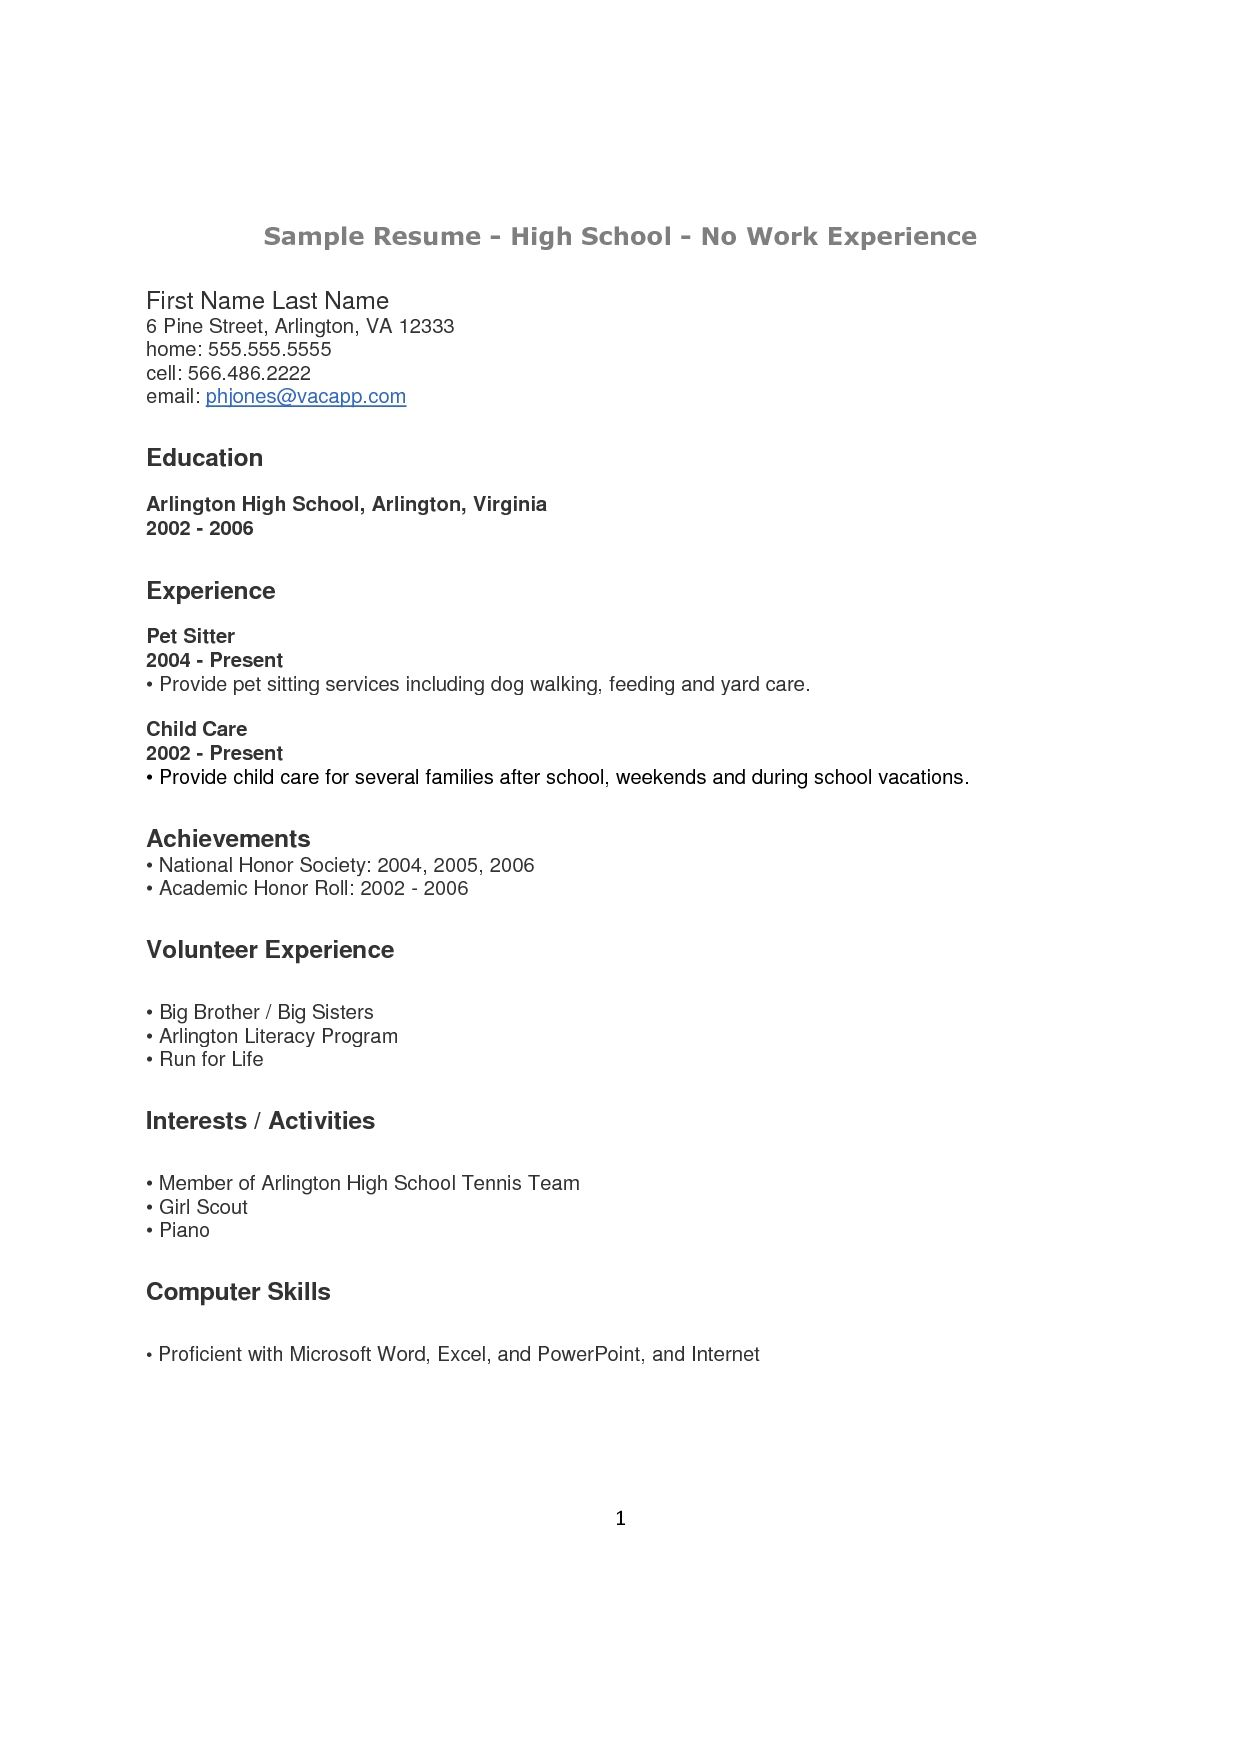 High School Student Resume With No Work Experience Examples Of